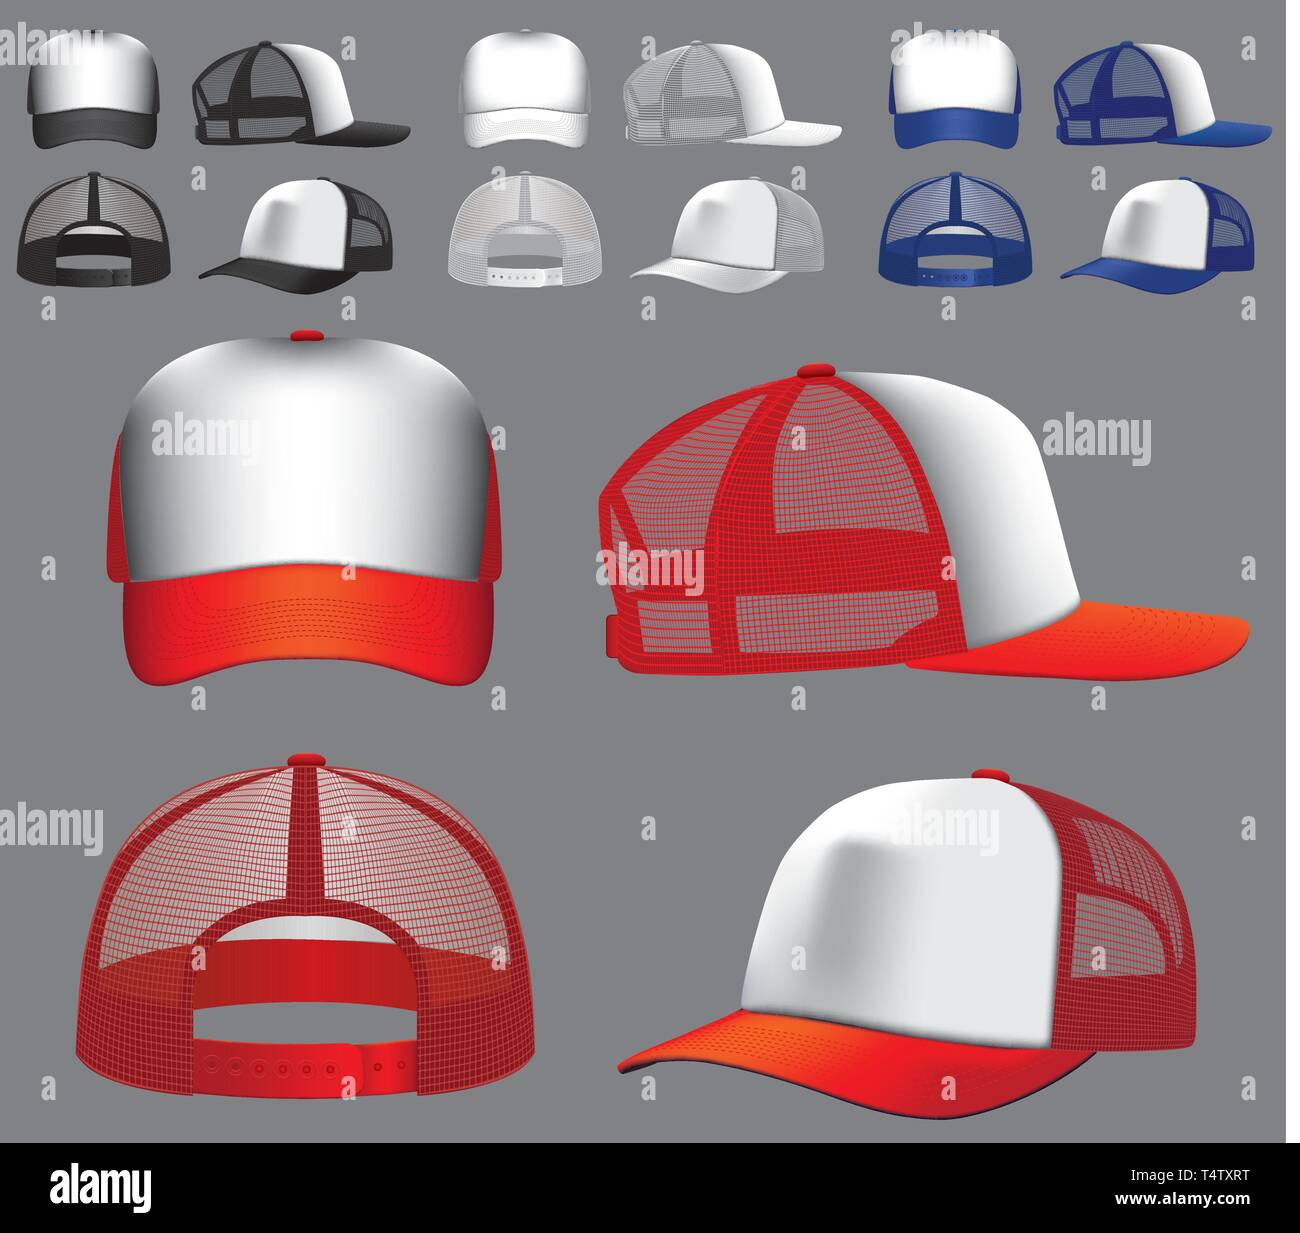 064fcb33 Trucker cap vector template customisable for proofing baseball hat cap  front back and side views -